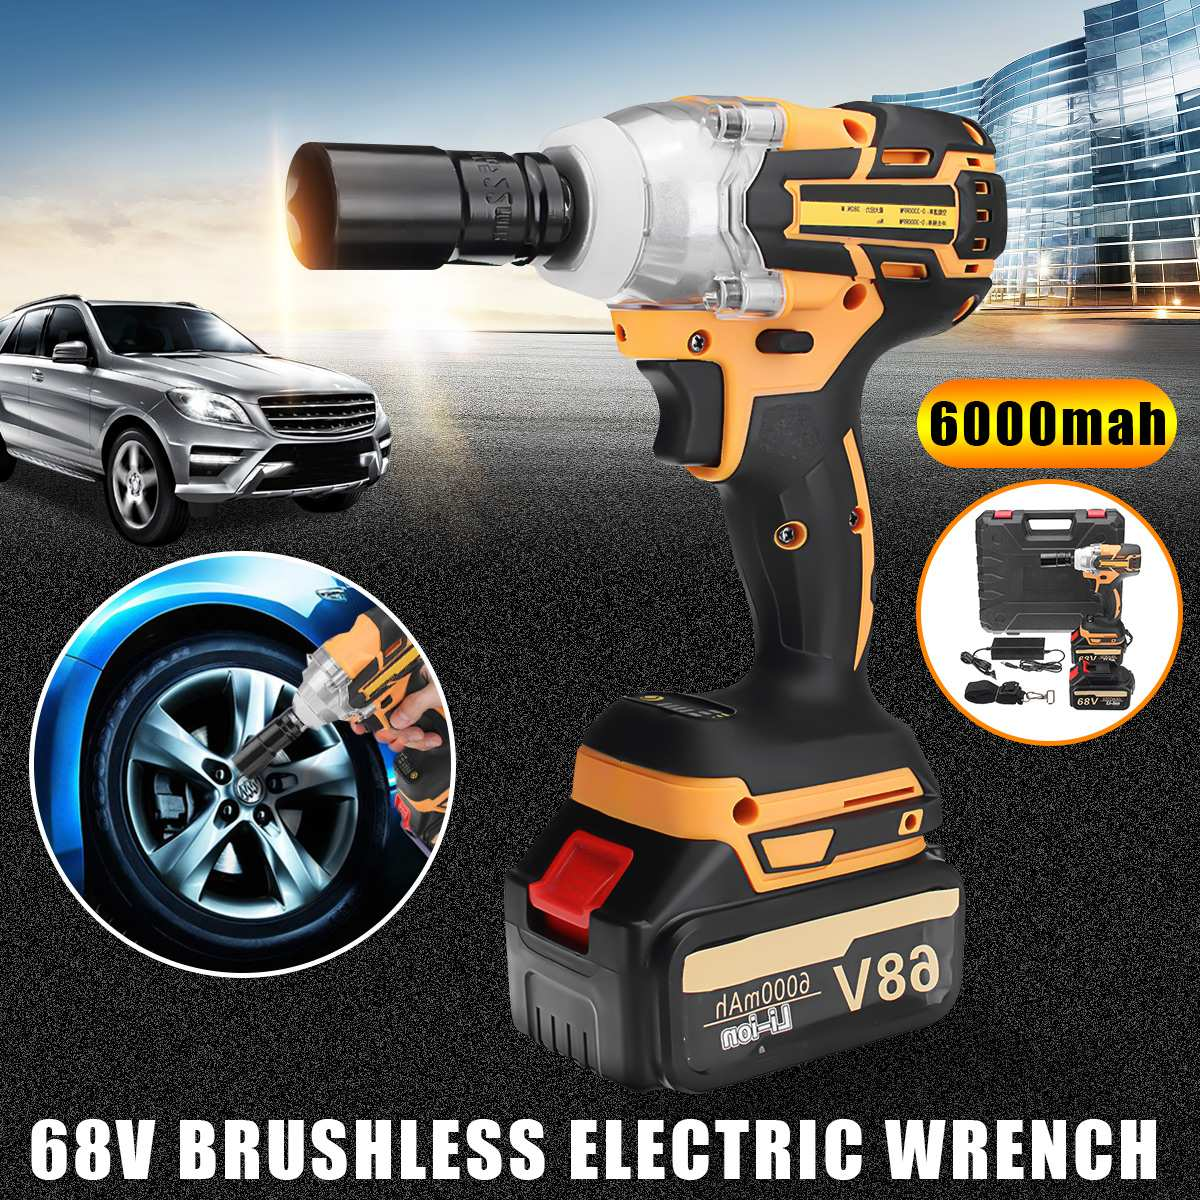 68V 6000mAh/8000mAh Brushless Cordless Electric Impact Socket Wrench Rechargeable Lithium Battery Home Car Electric Impact Drill tenwa20v brushless electric impact wrench cordless rechargeable lithium battery socket impact digital electric wrench